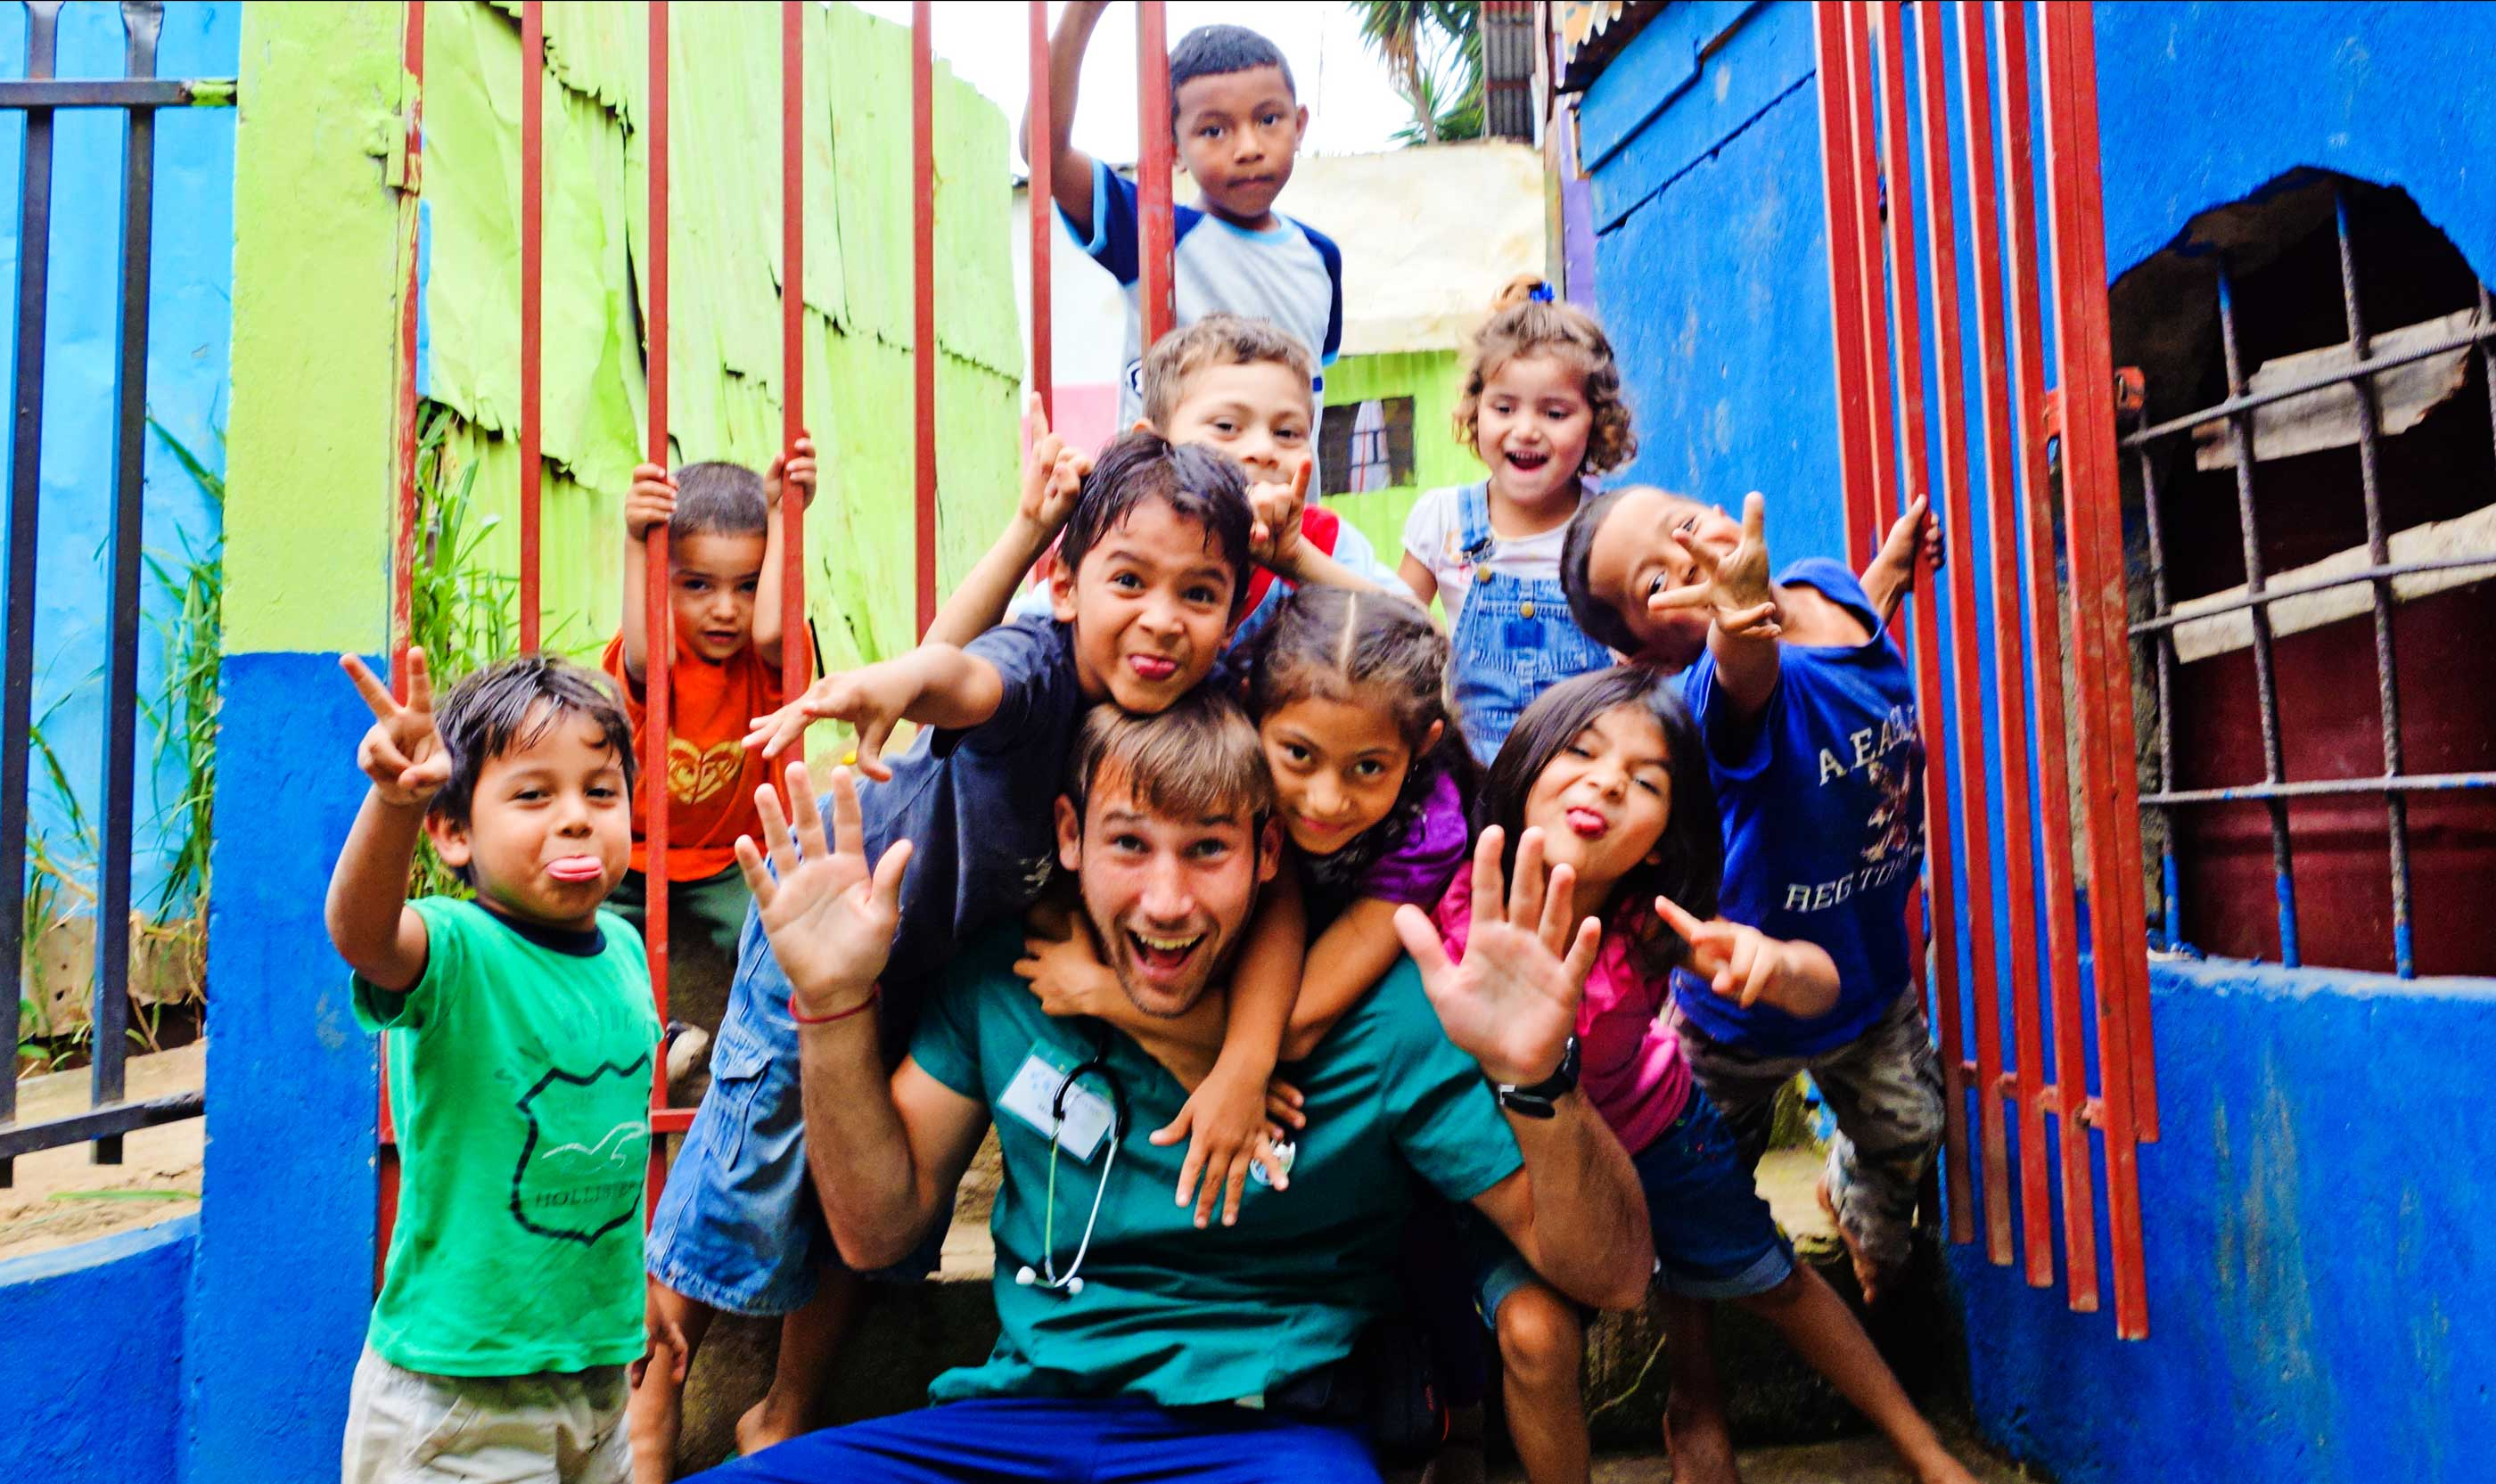 Volunteer Taking A Photo With Children